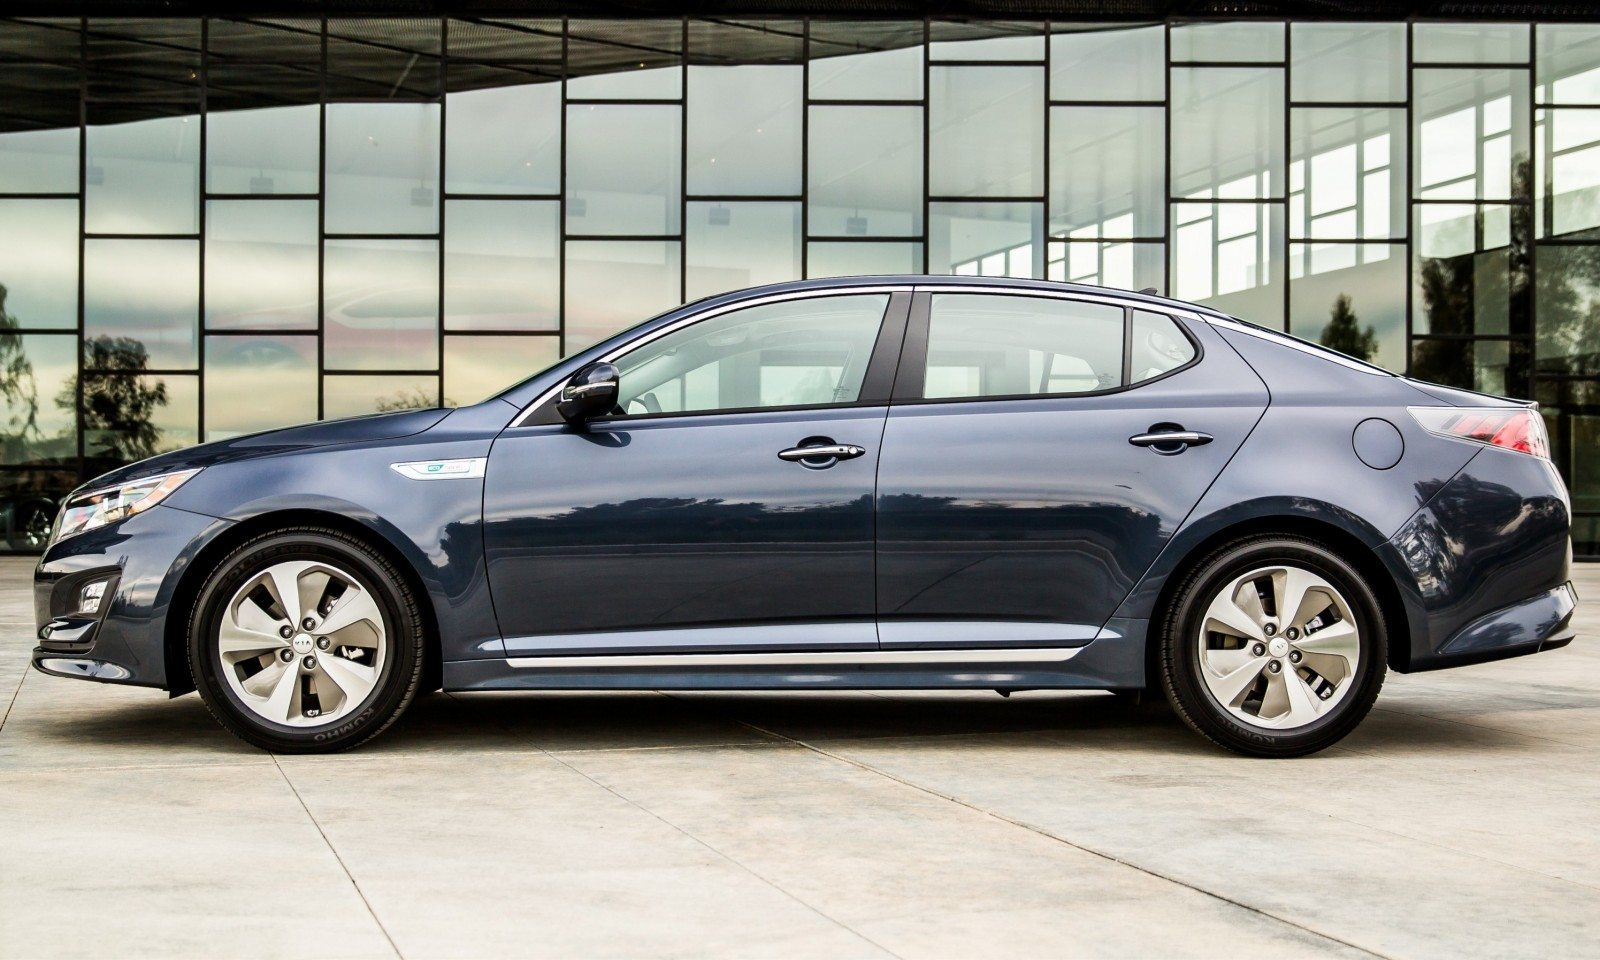 2014 Kia Optima Hybrid Updated With New Grille and LEDs Front and Rear - Specs, Features and Pricing 9